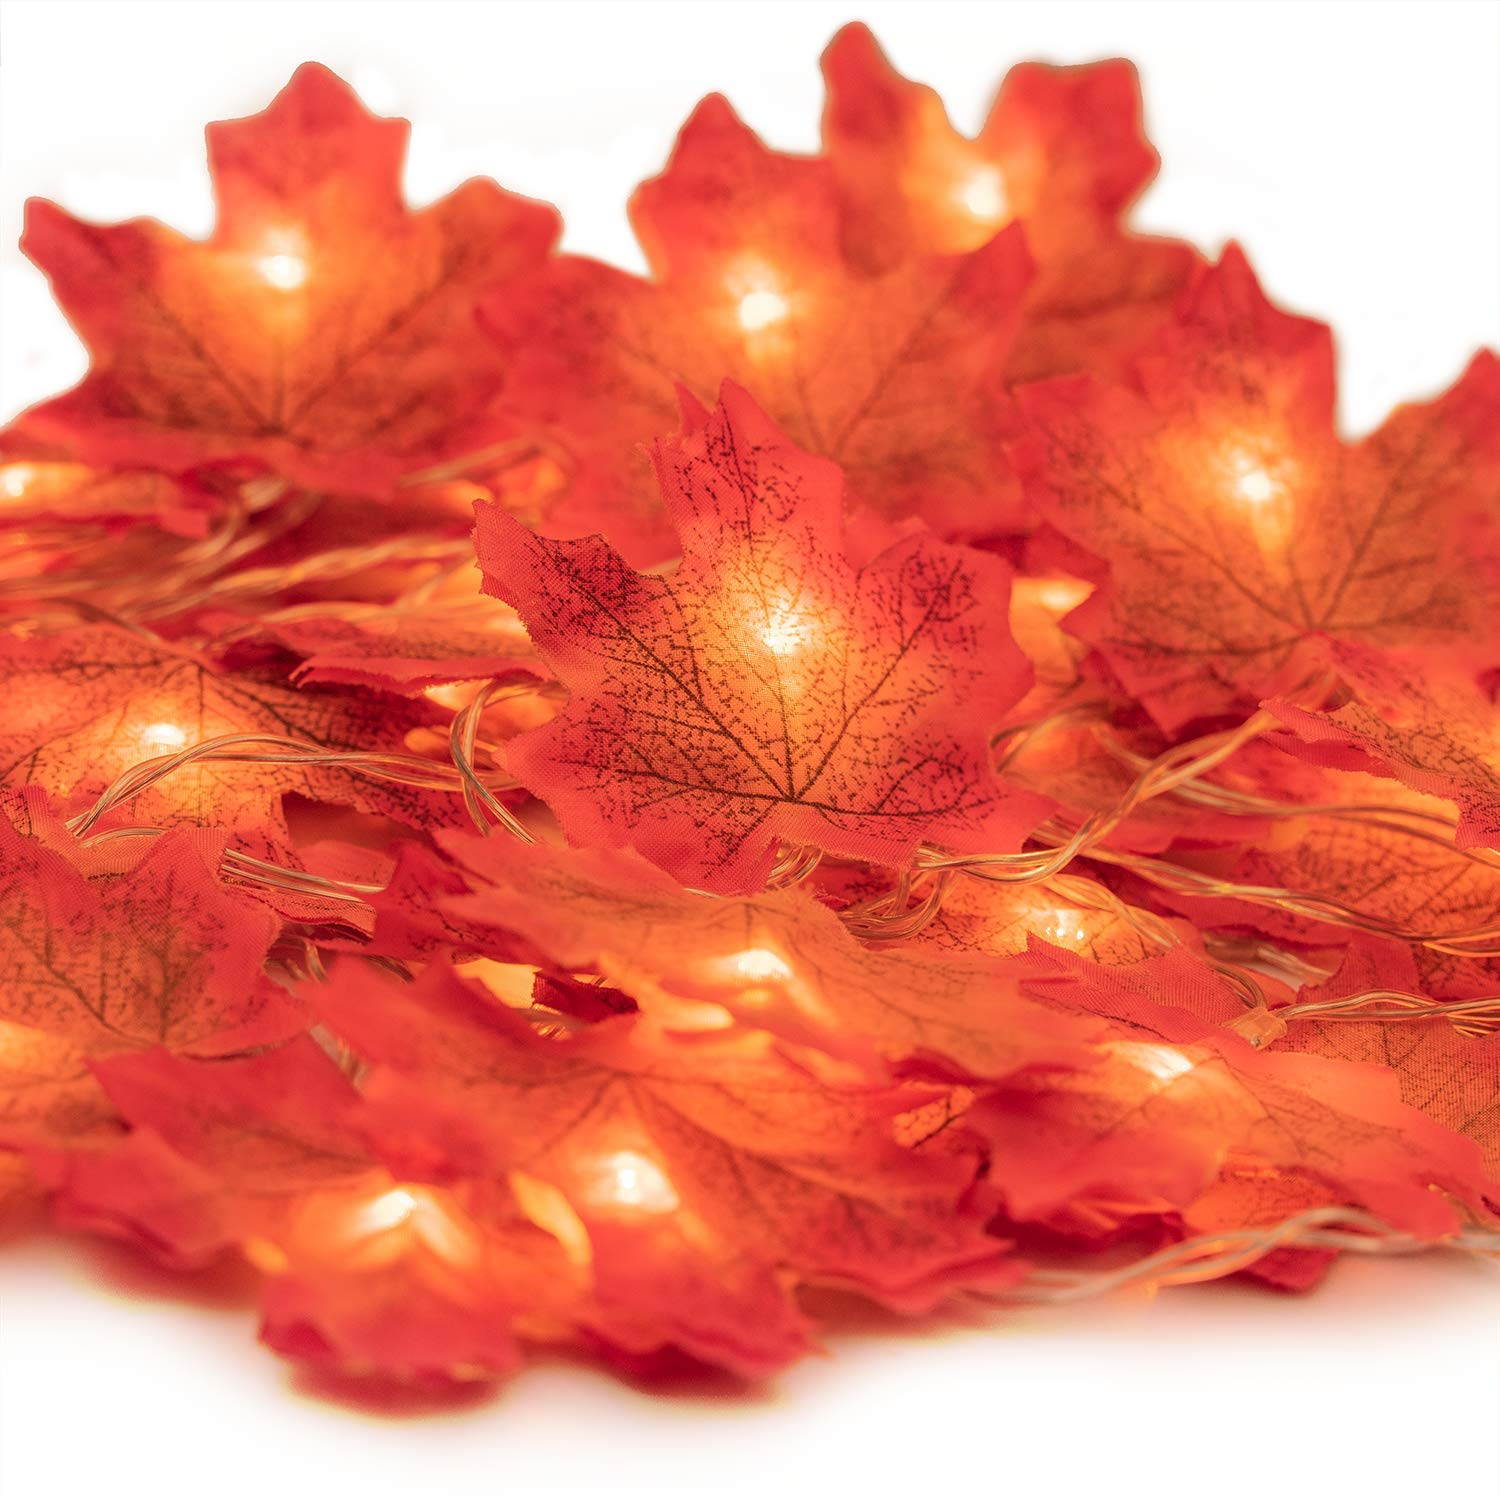 HENMI Fall Maple Leaf Garland 20 LED Maple Leaves Fairy Lights 7.9 Feet Fall Garland Lights Waterproof Maple Leaf String Lights 3AA Battery Powered Lighted Garland for Party Thanksgiving Decor